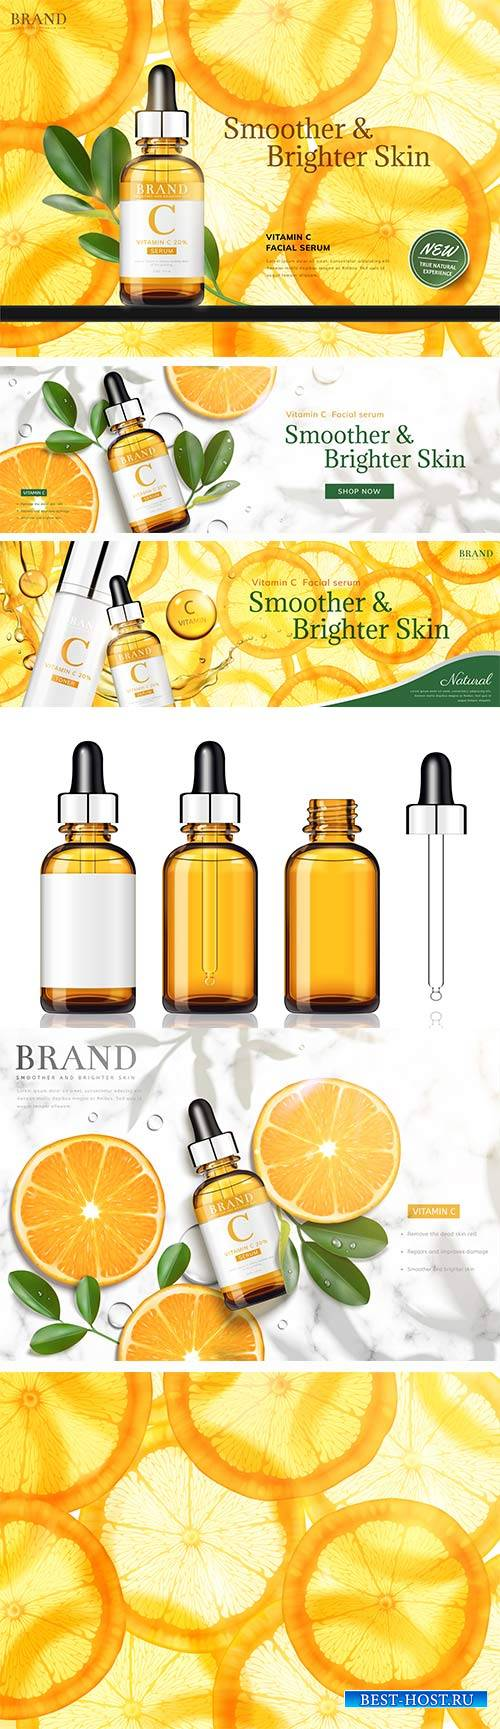 Vitamin C essence banner ads 3d vector illustration